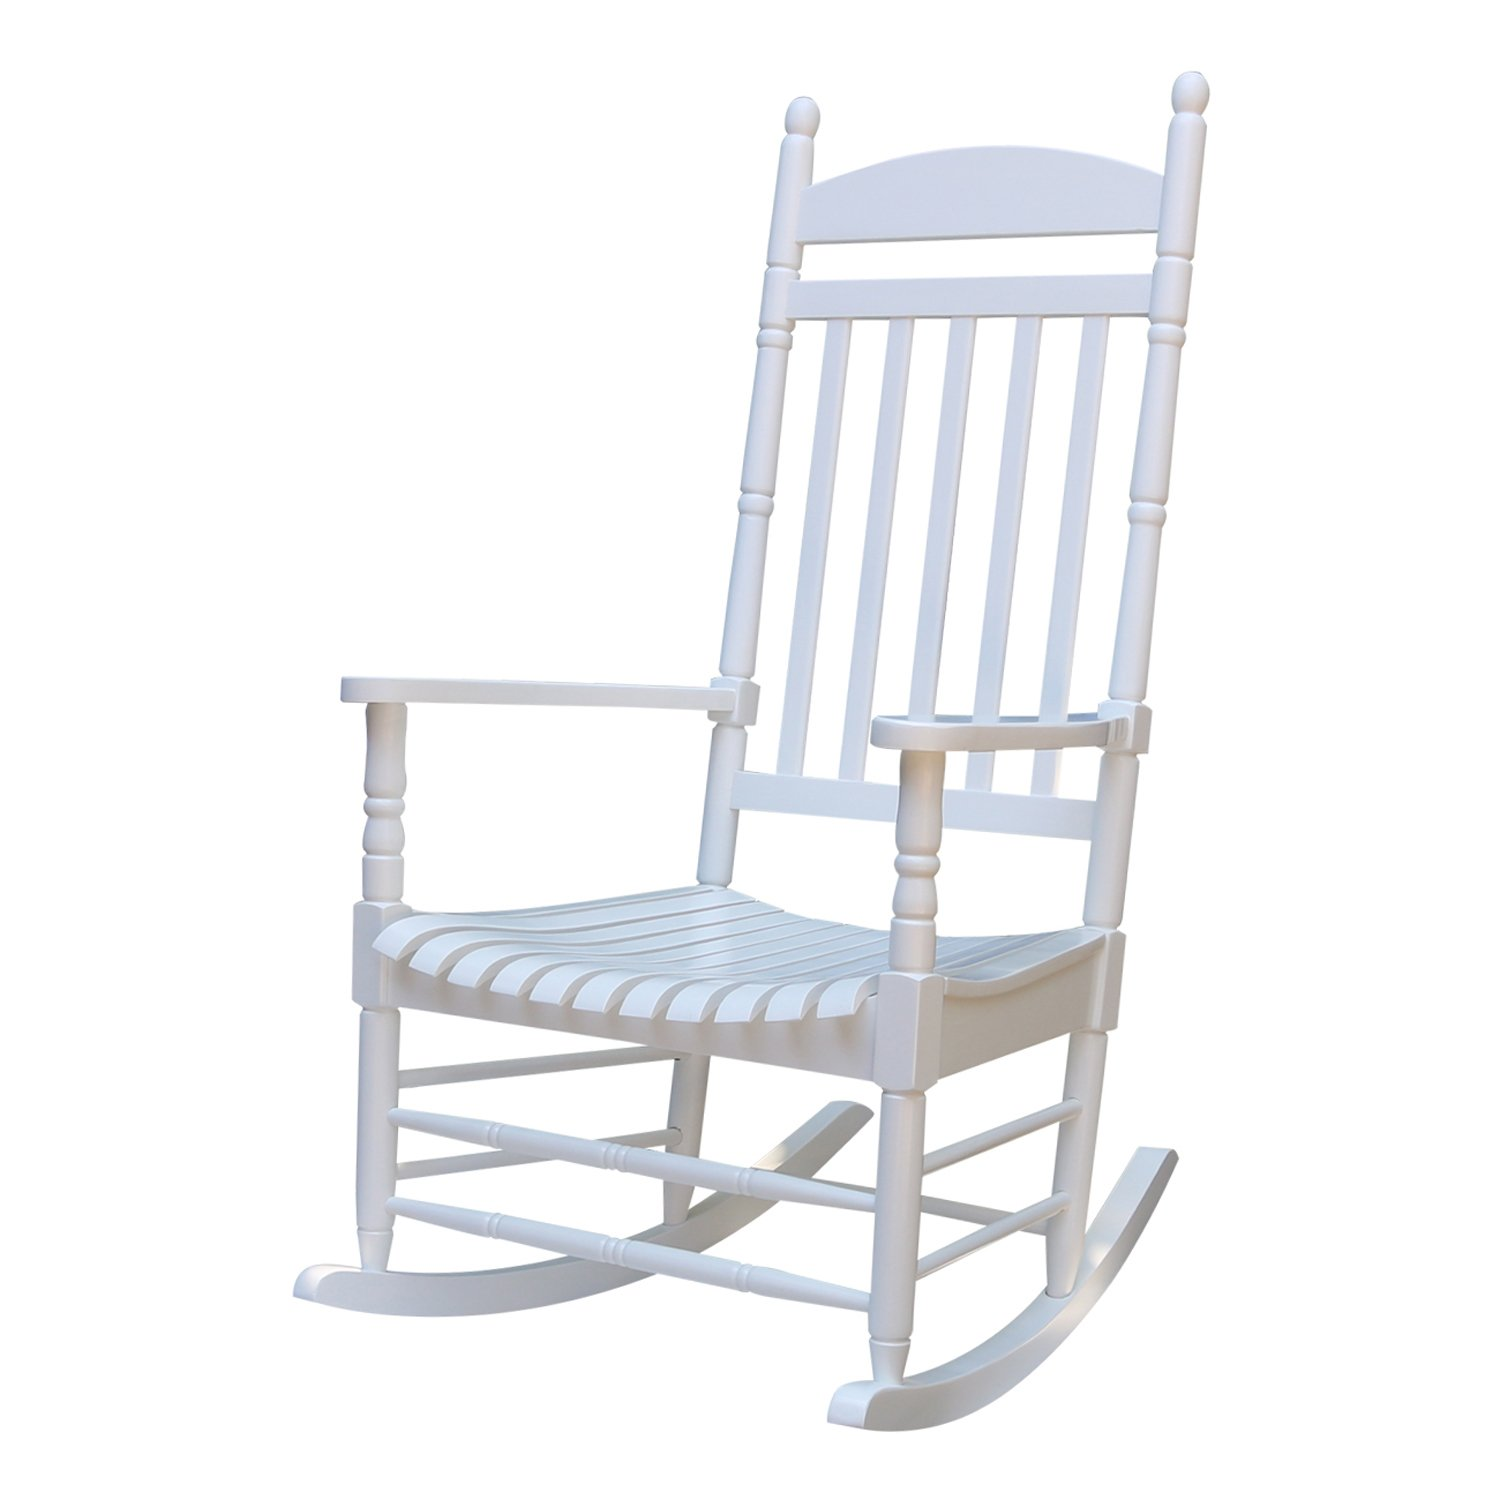 International Concepts R-93015 Porch Rocker, Solid Wood White